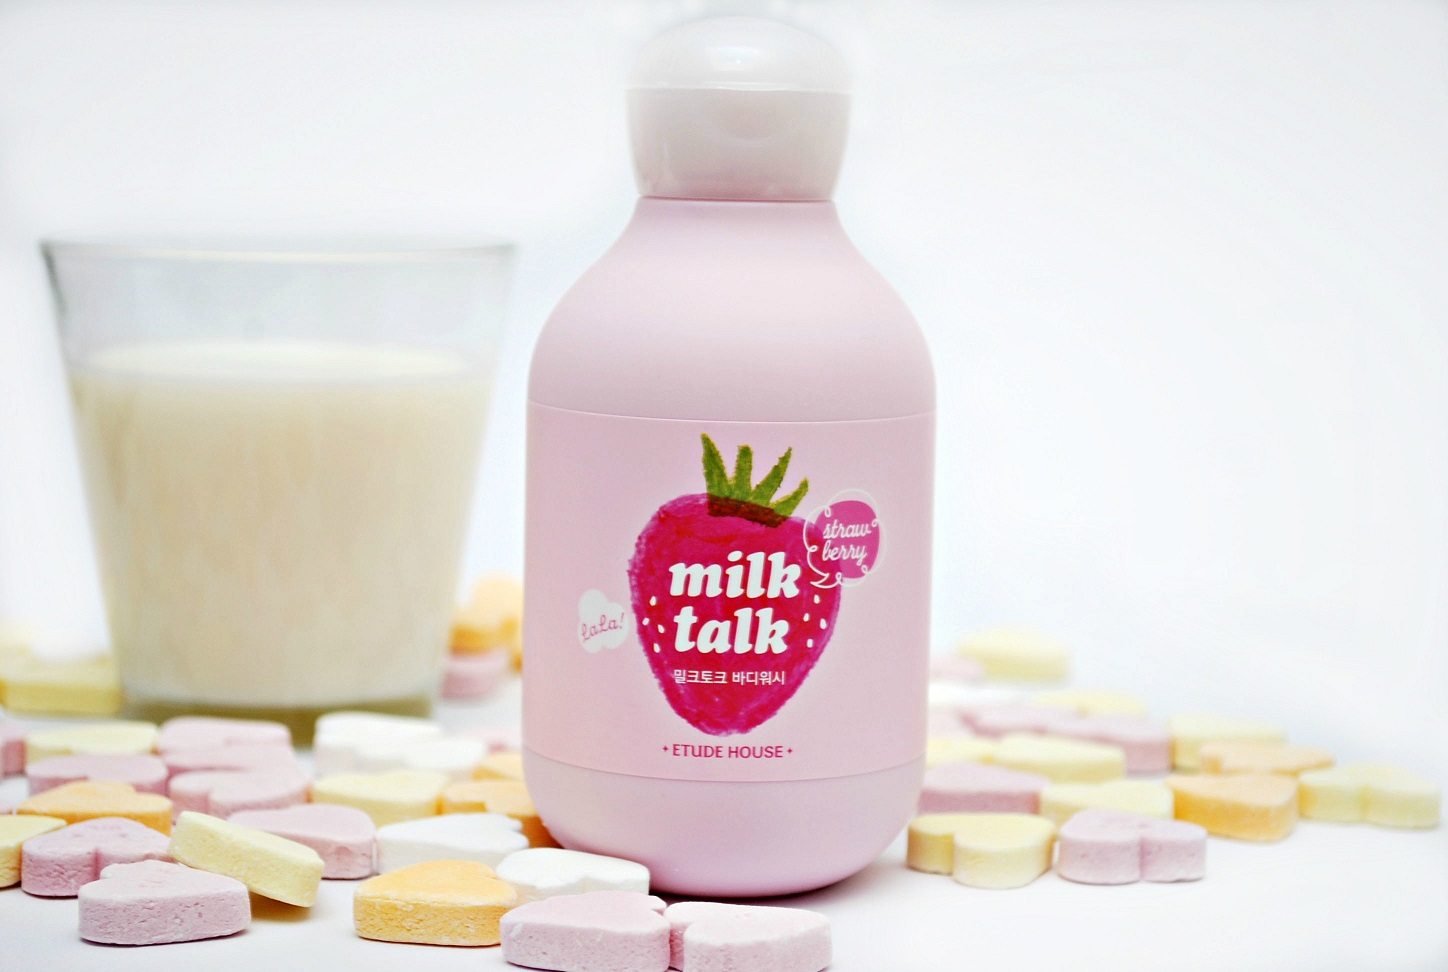 Review Milk Talk Body Wash Strawberry Milk etude house